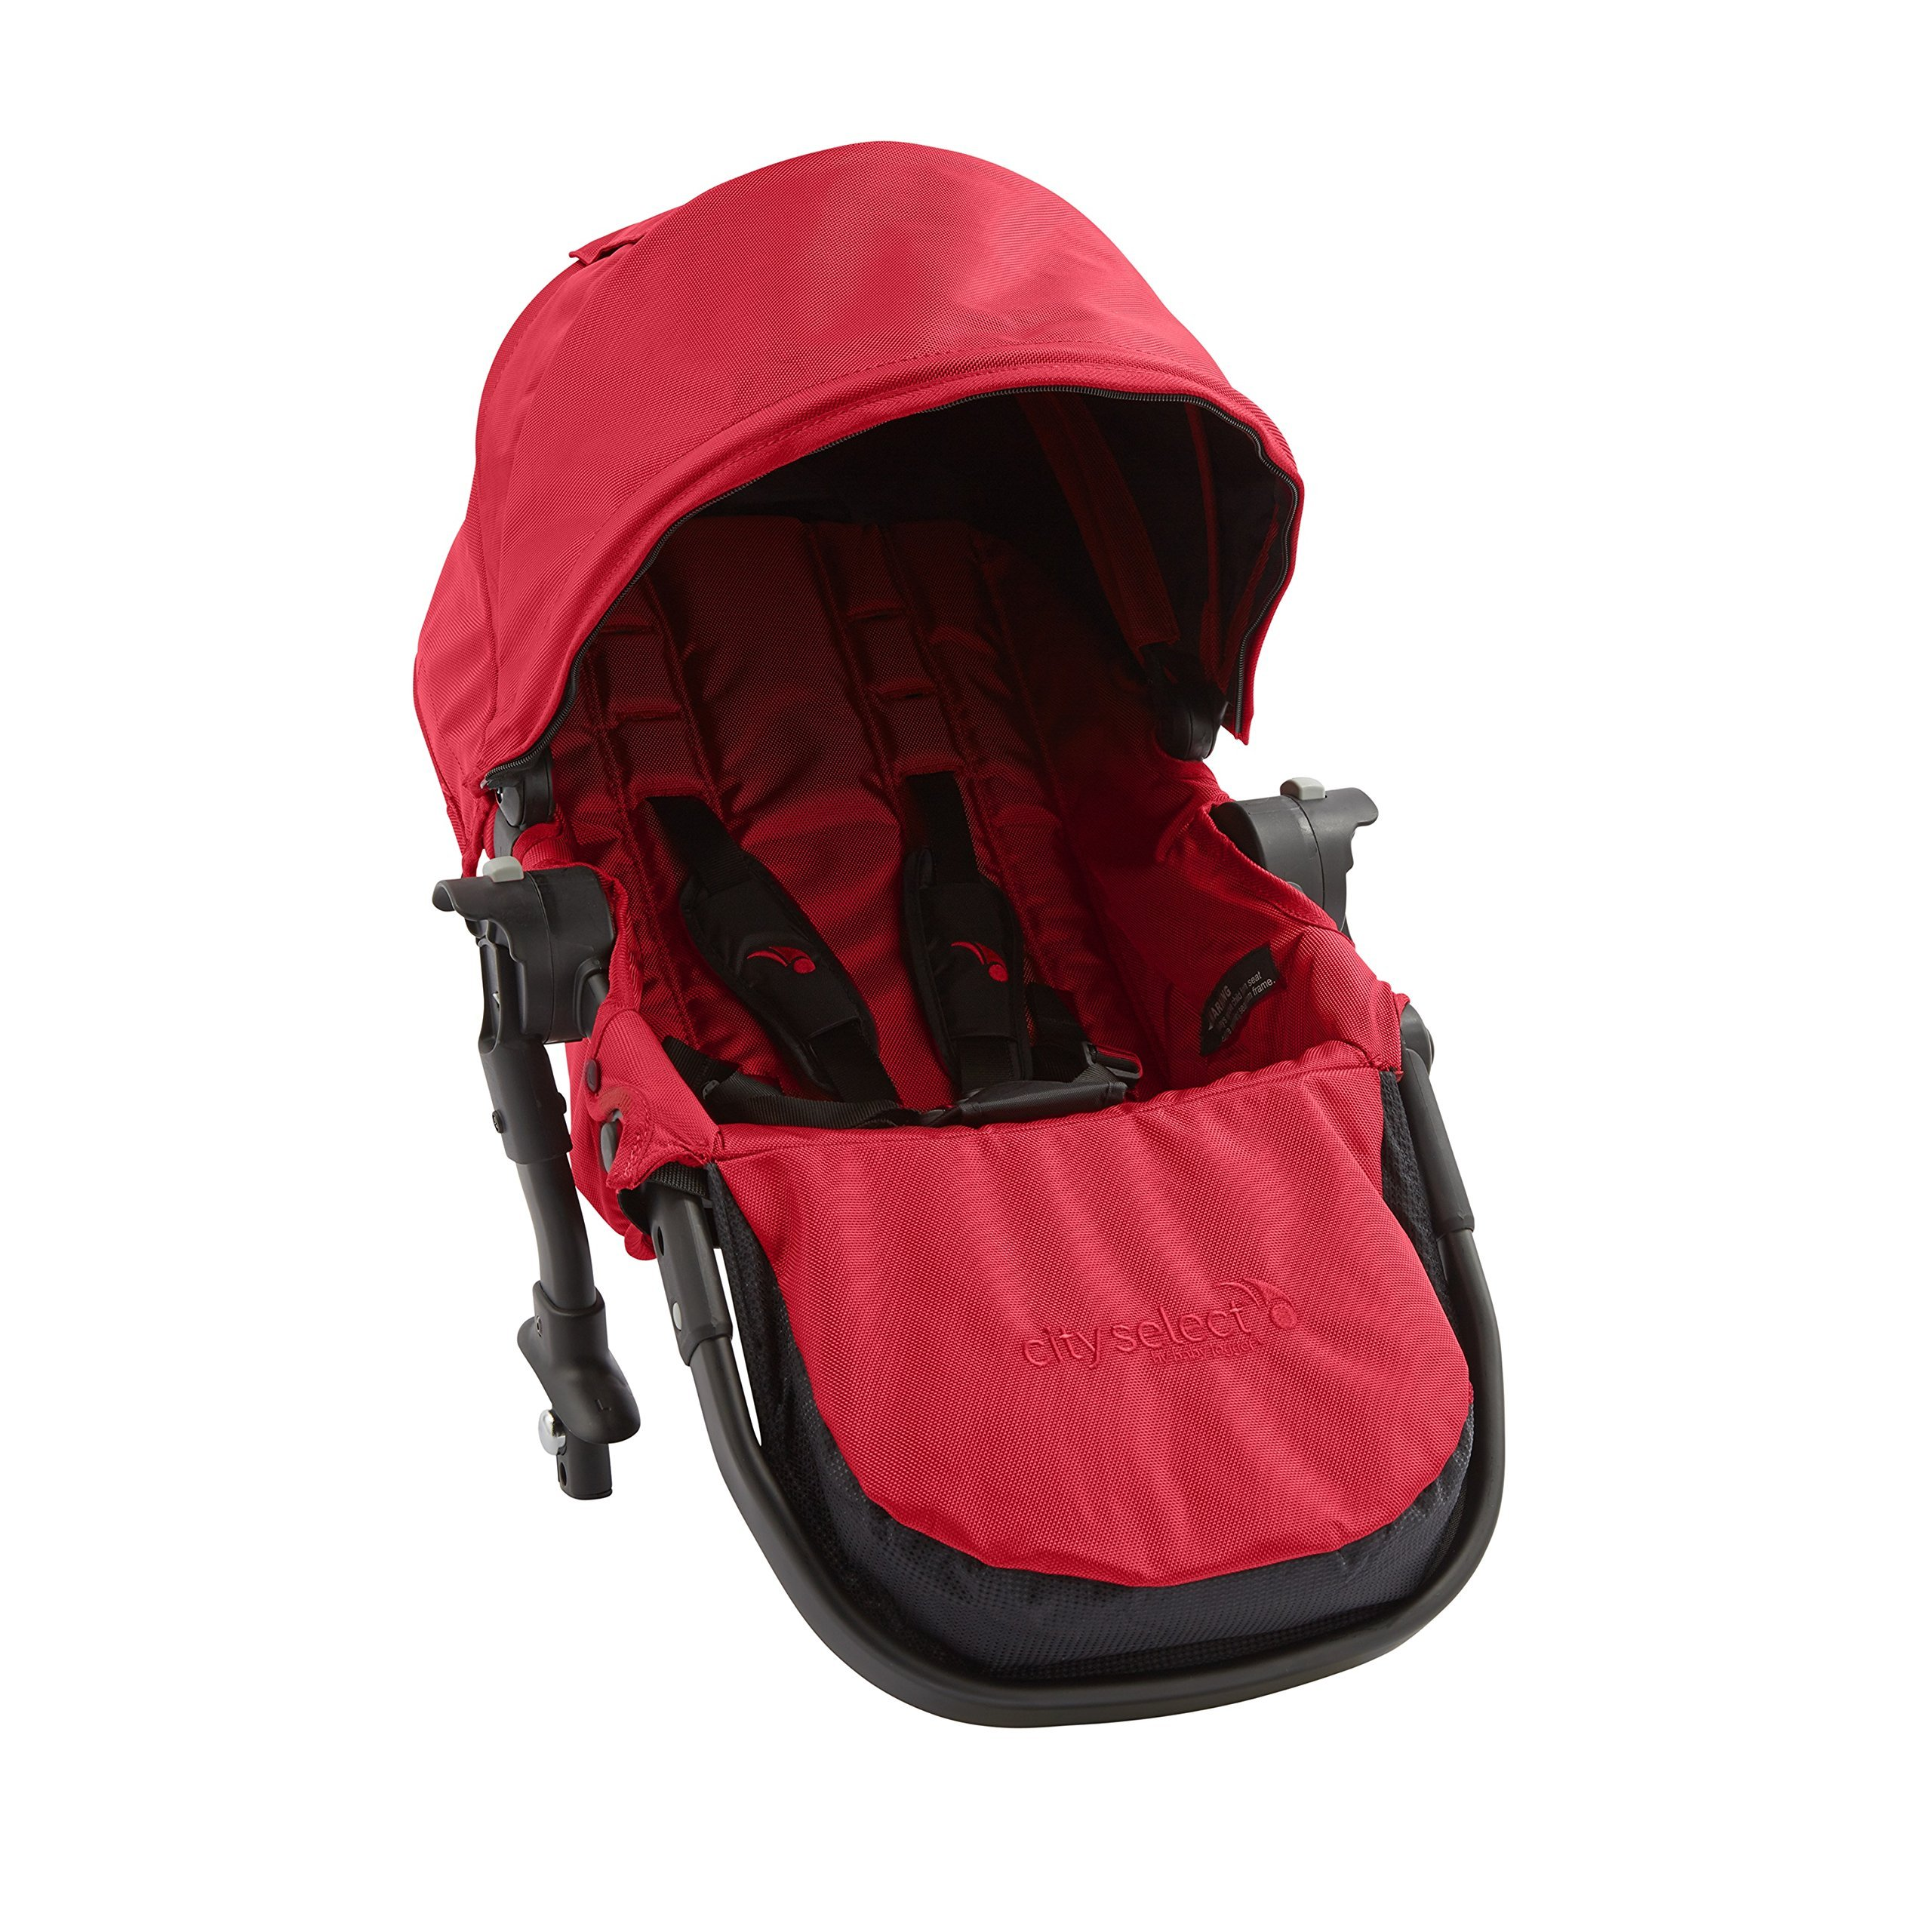 Baby Jogger City Select Second Seat Kit, Red